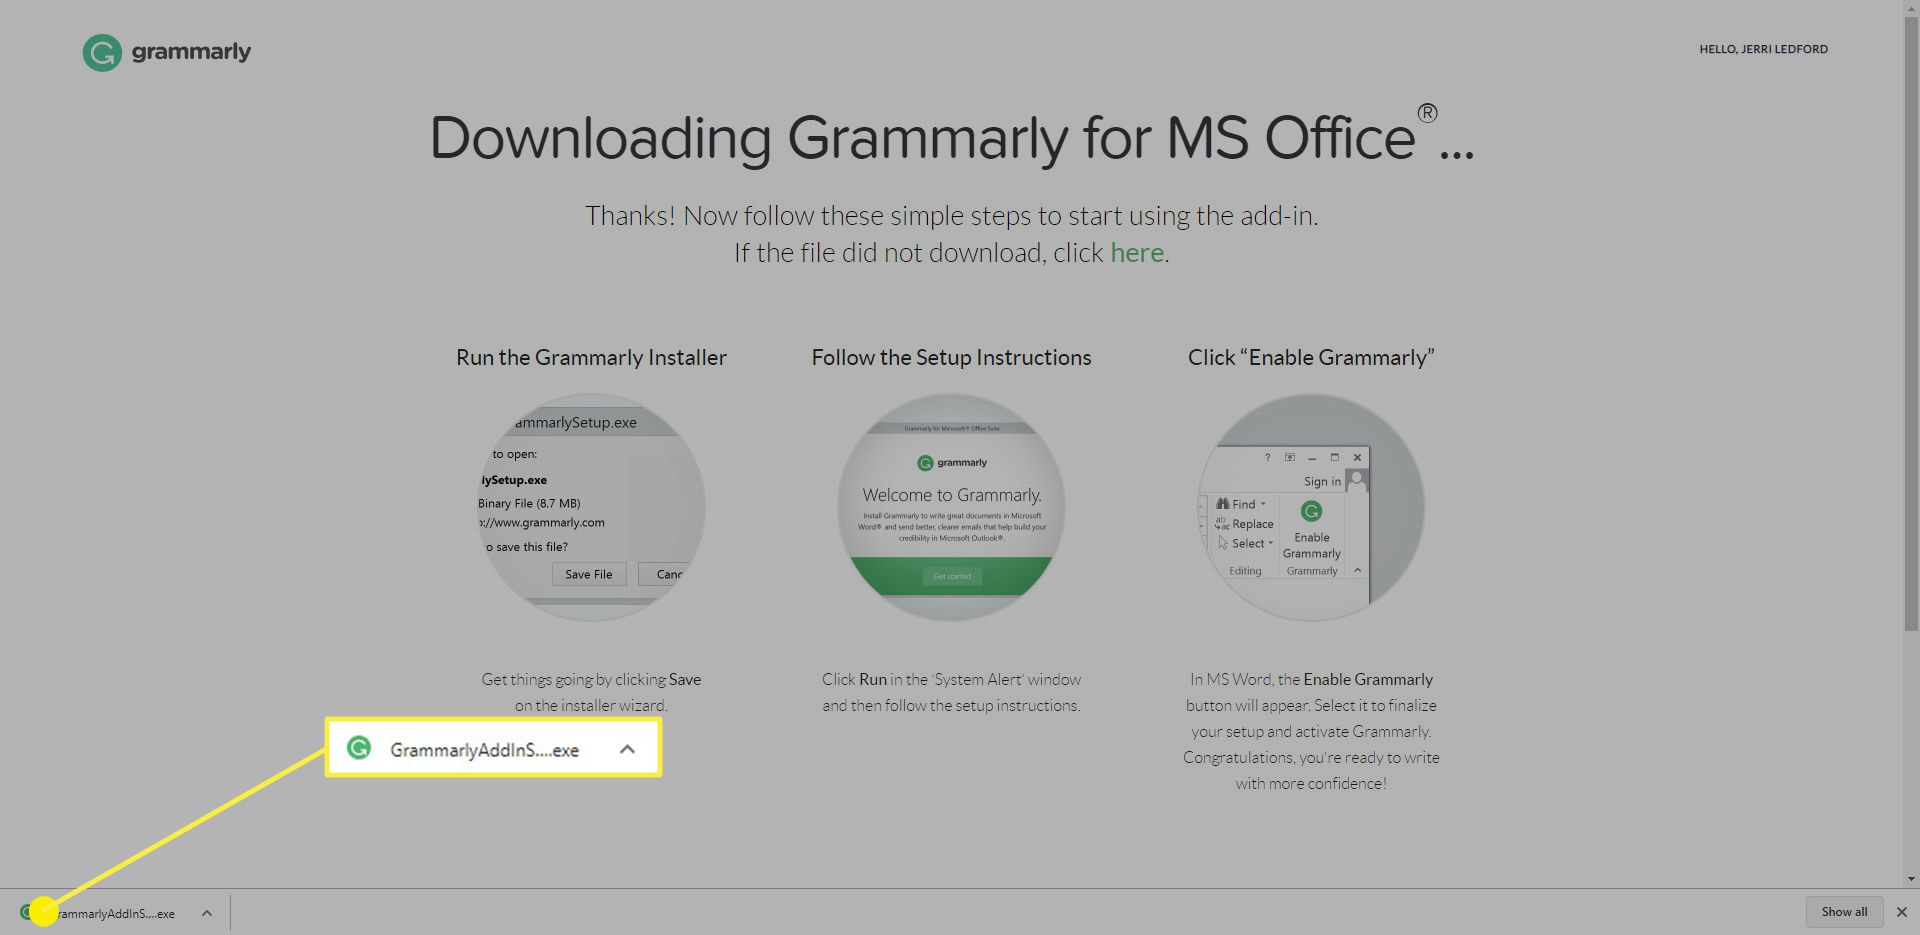 The downloaded Grammarly executable file.